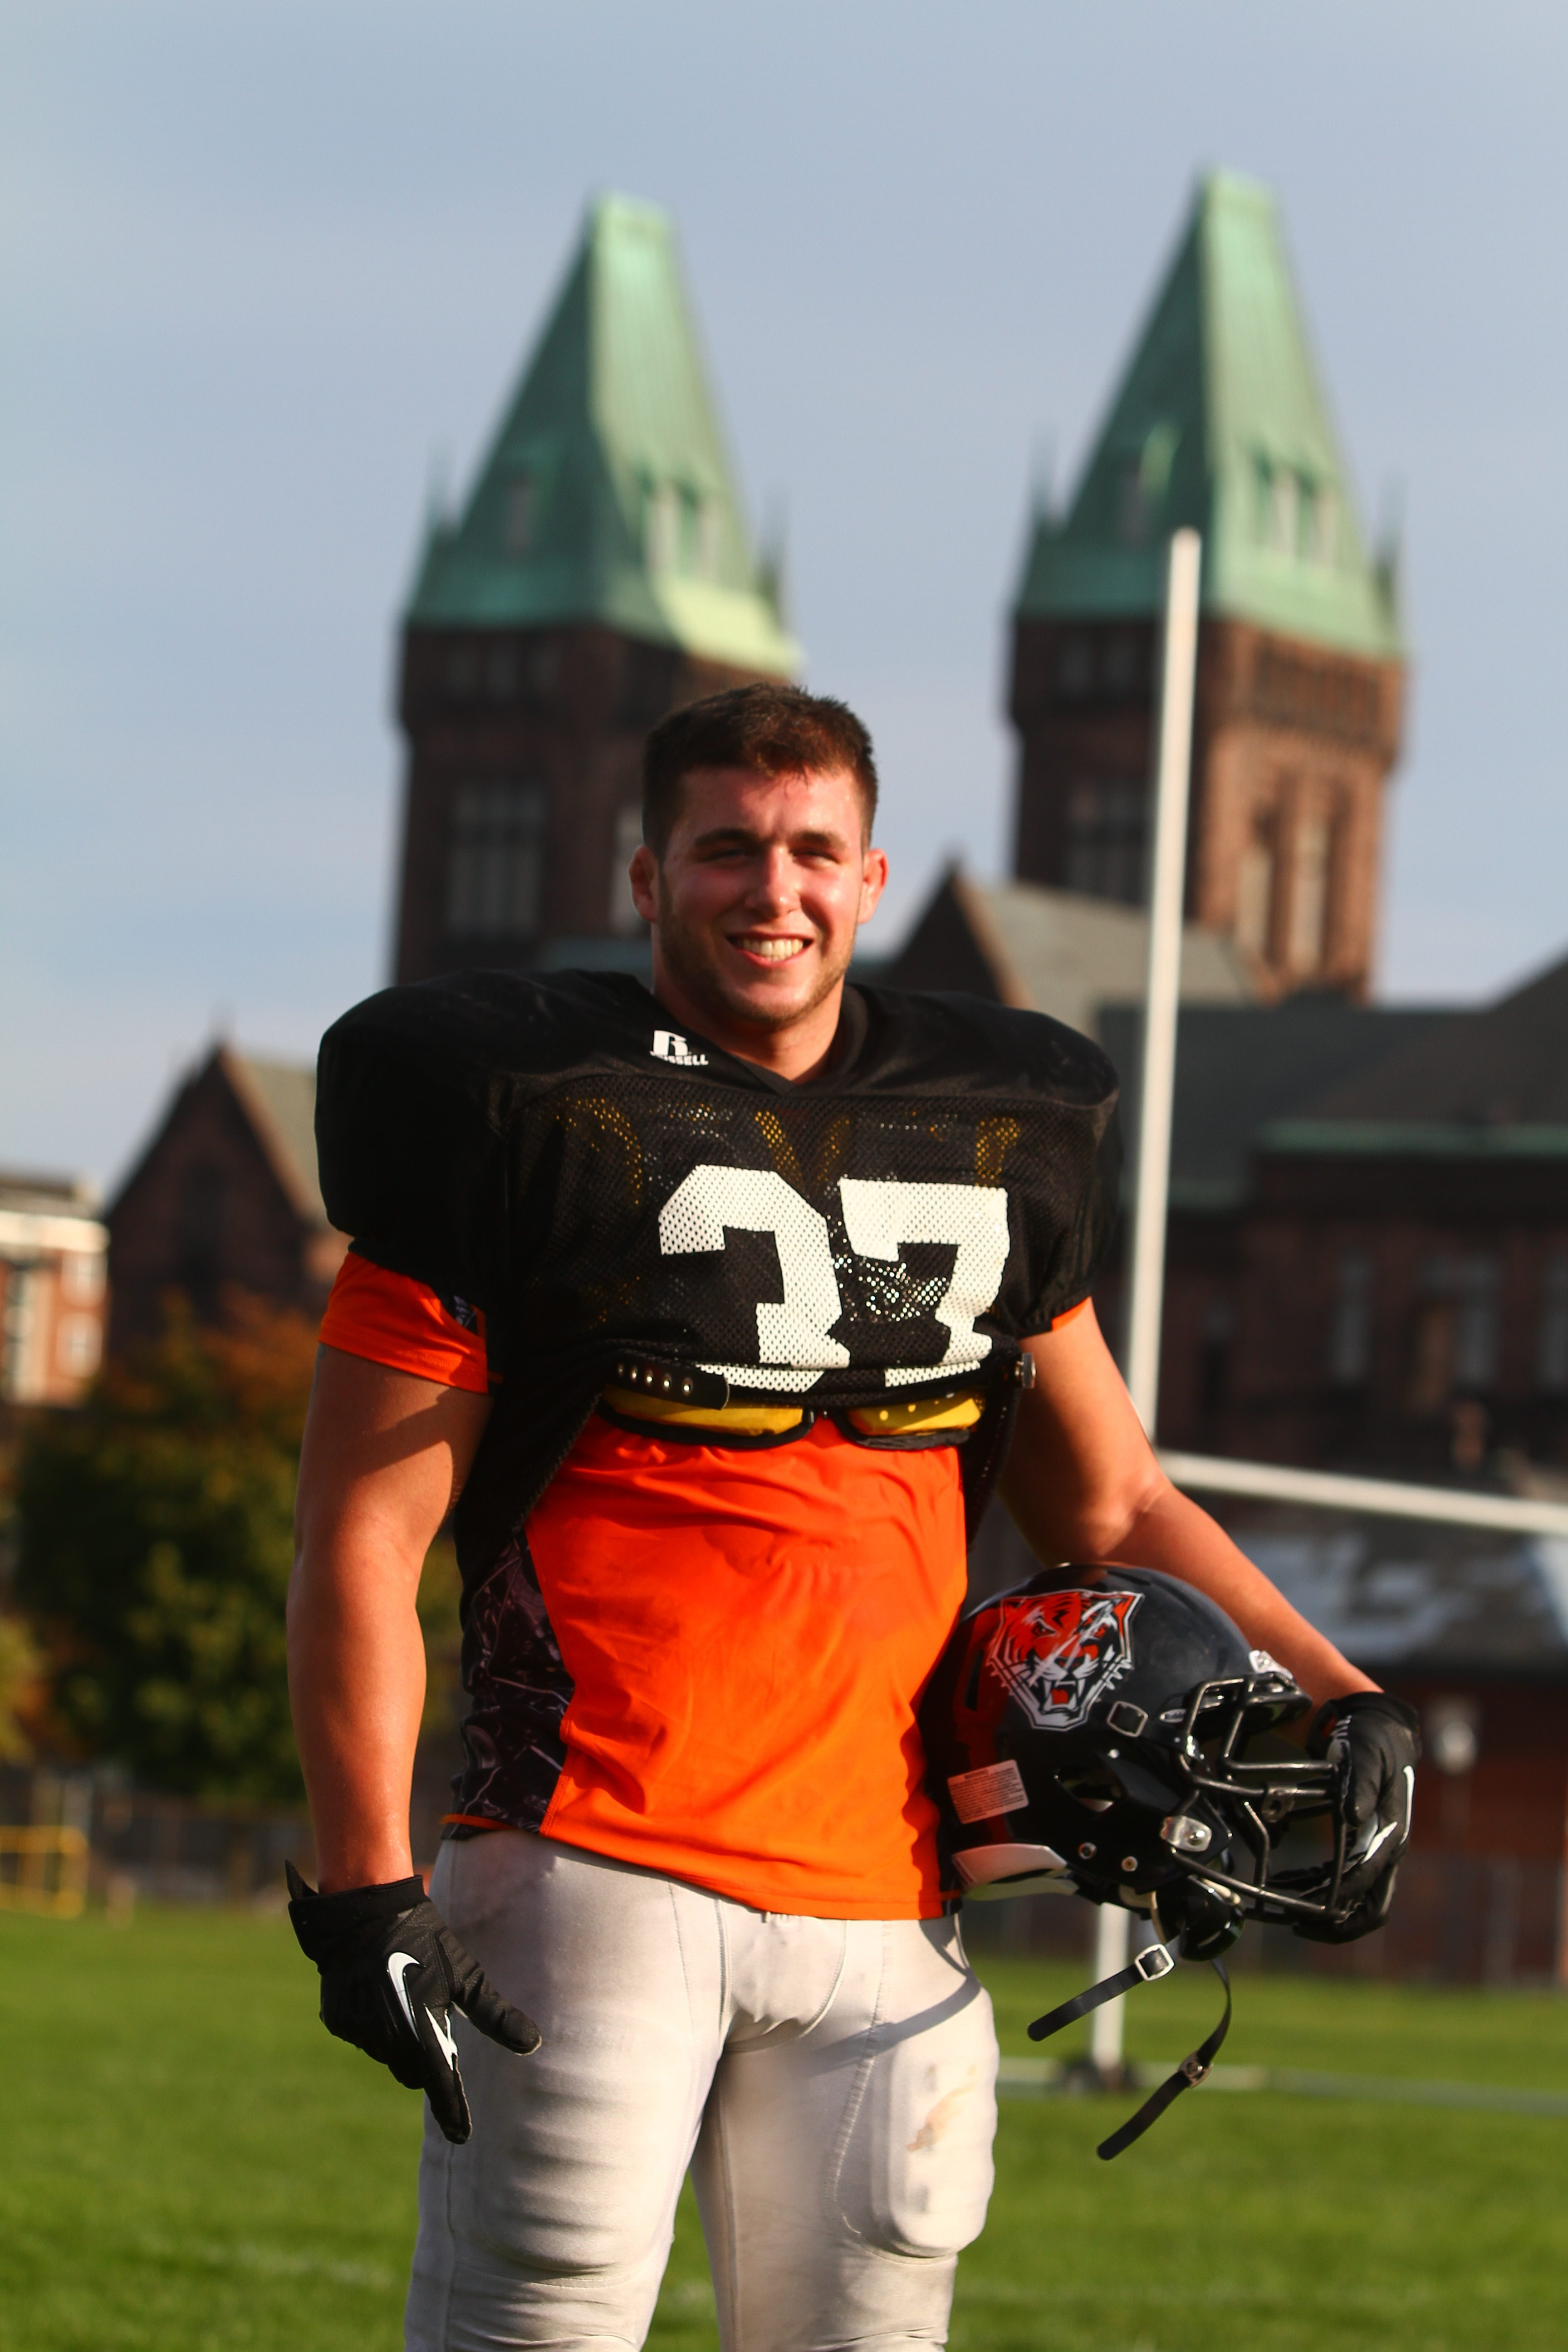 Eddie Weiser is back on the football field after a layoff.